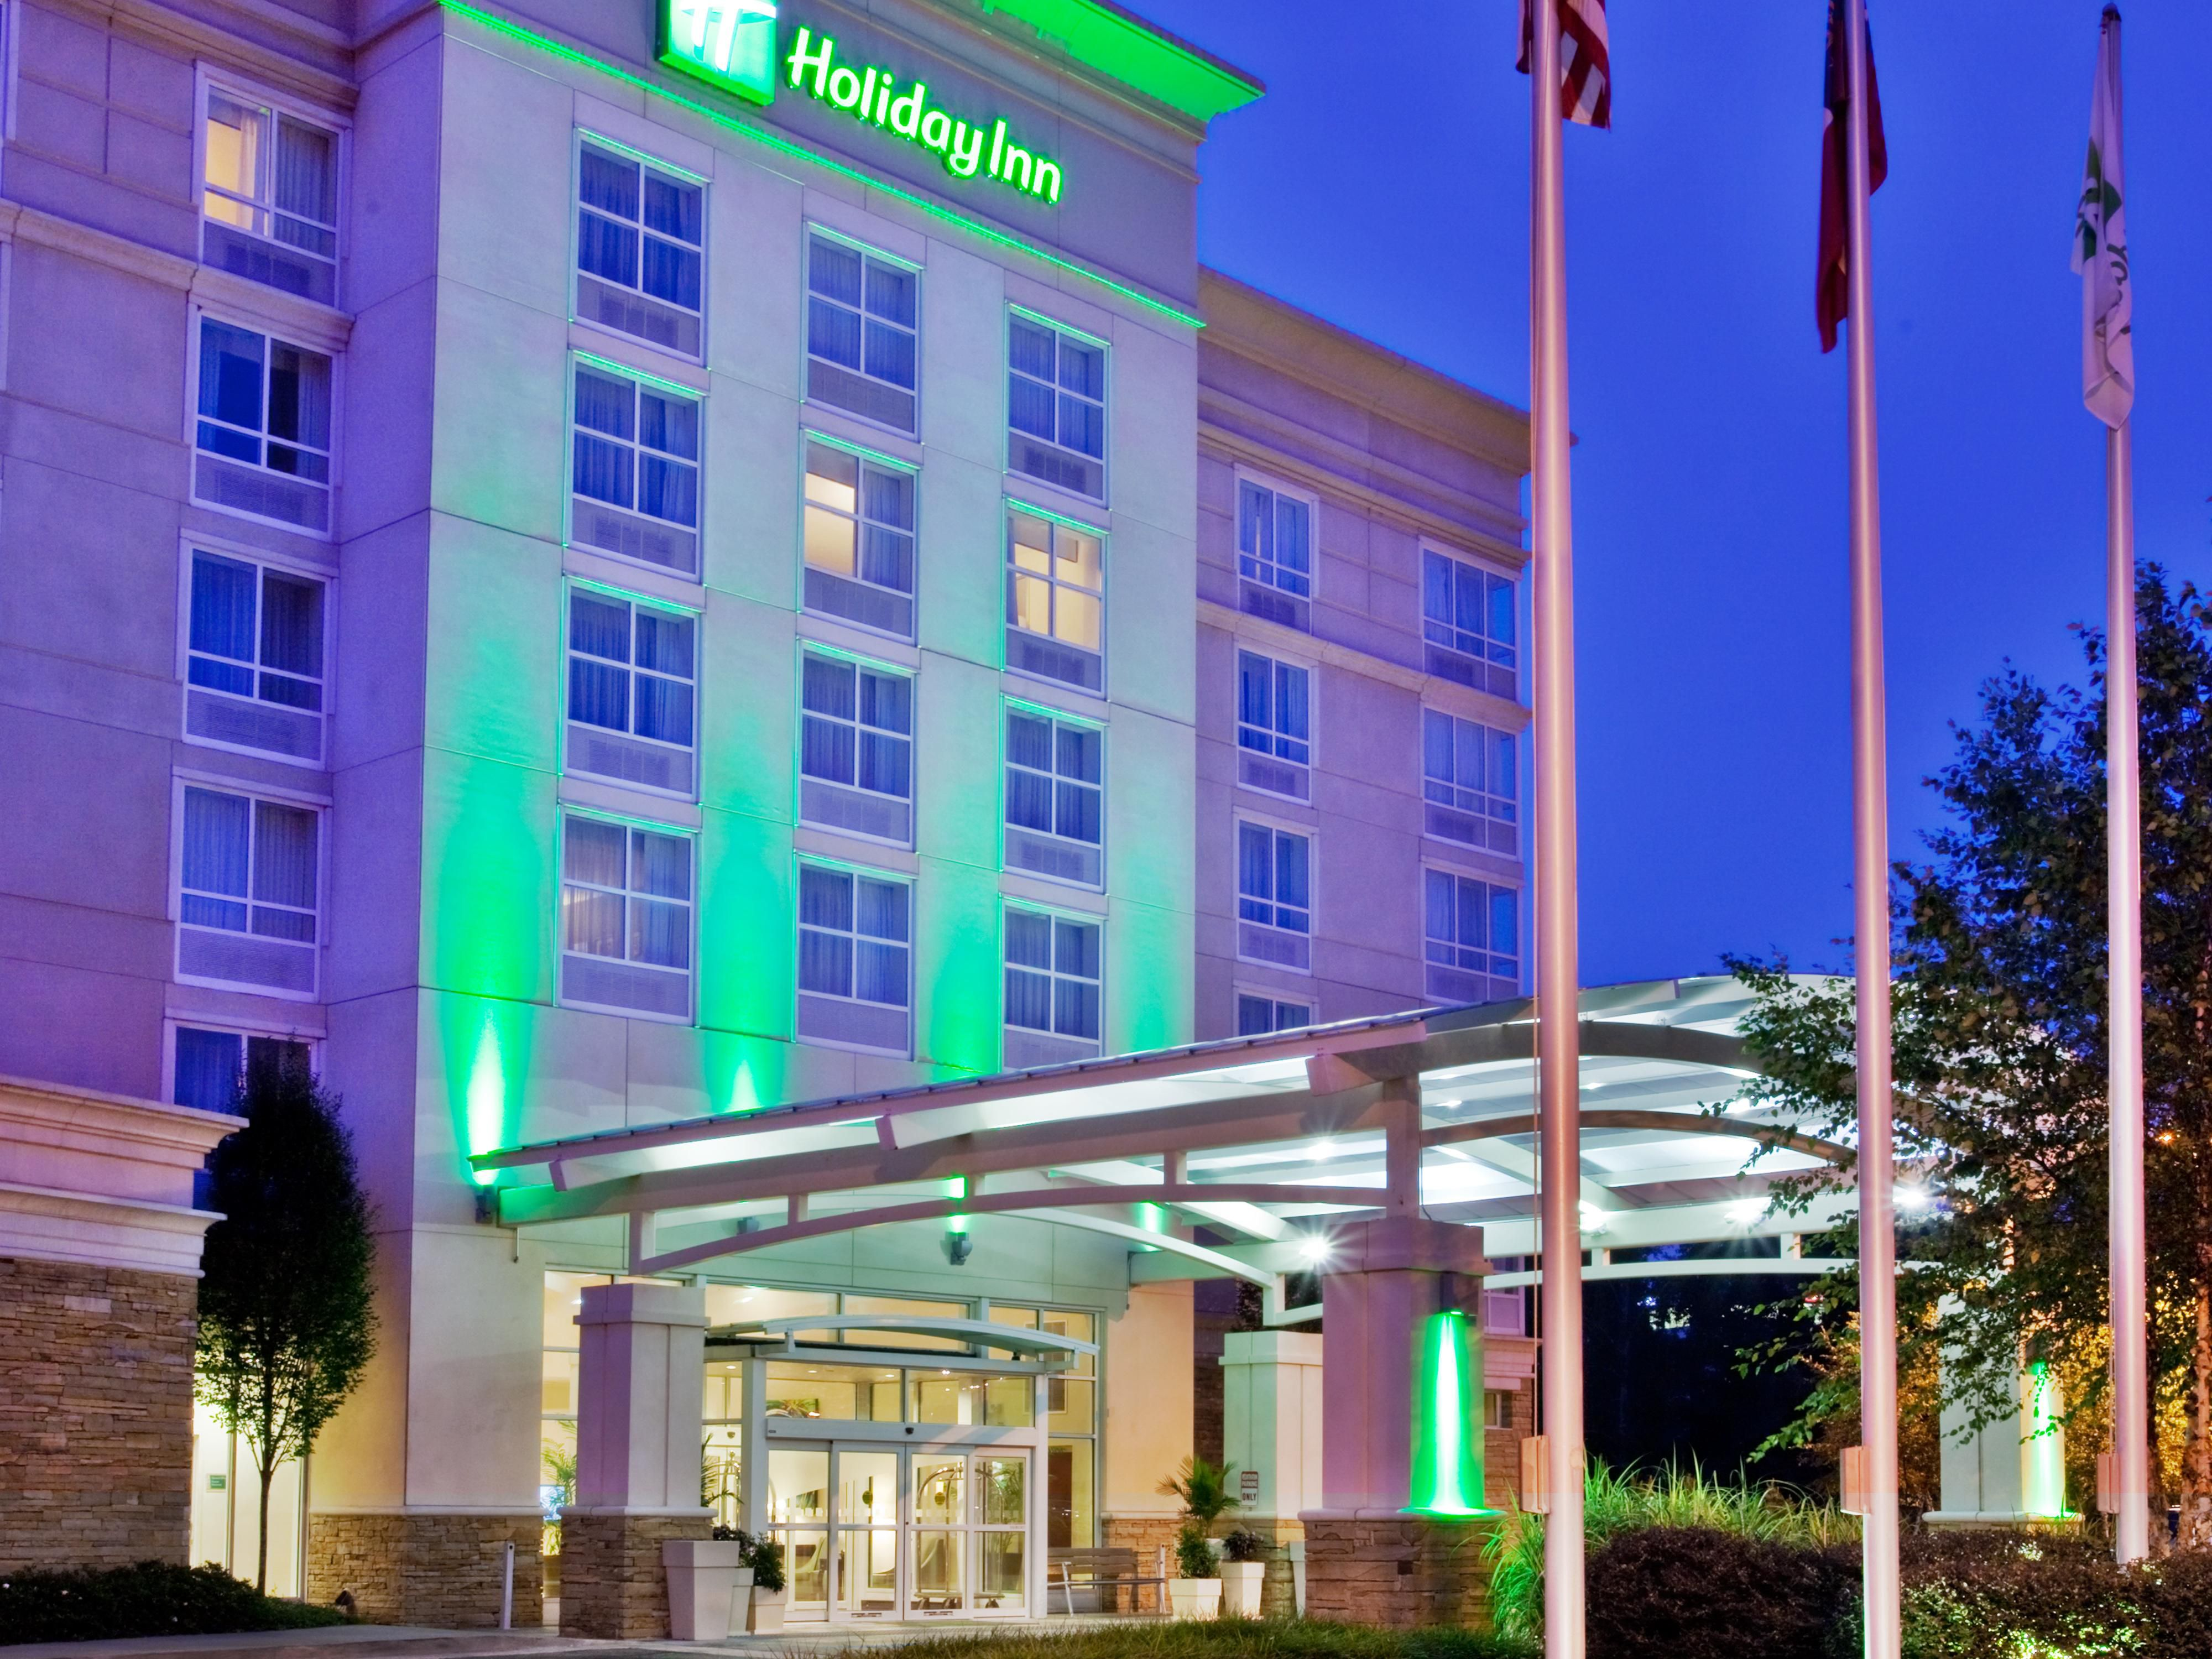 Holiday Inn Gwinnett Center Exterior